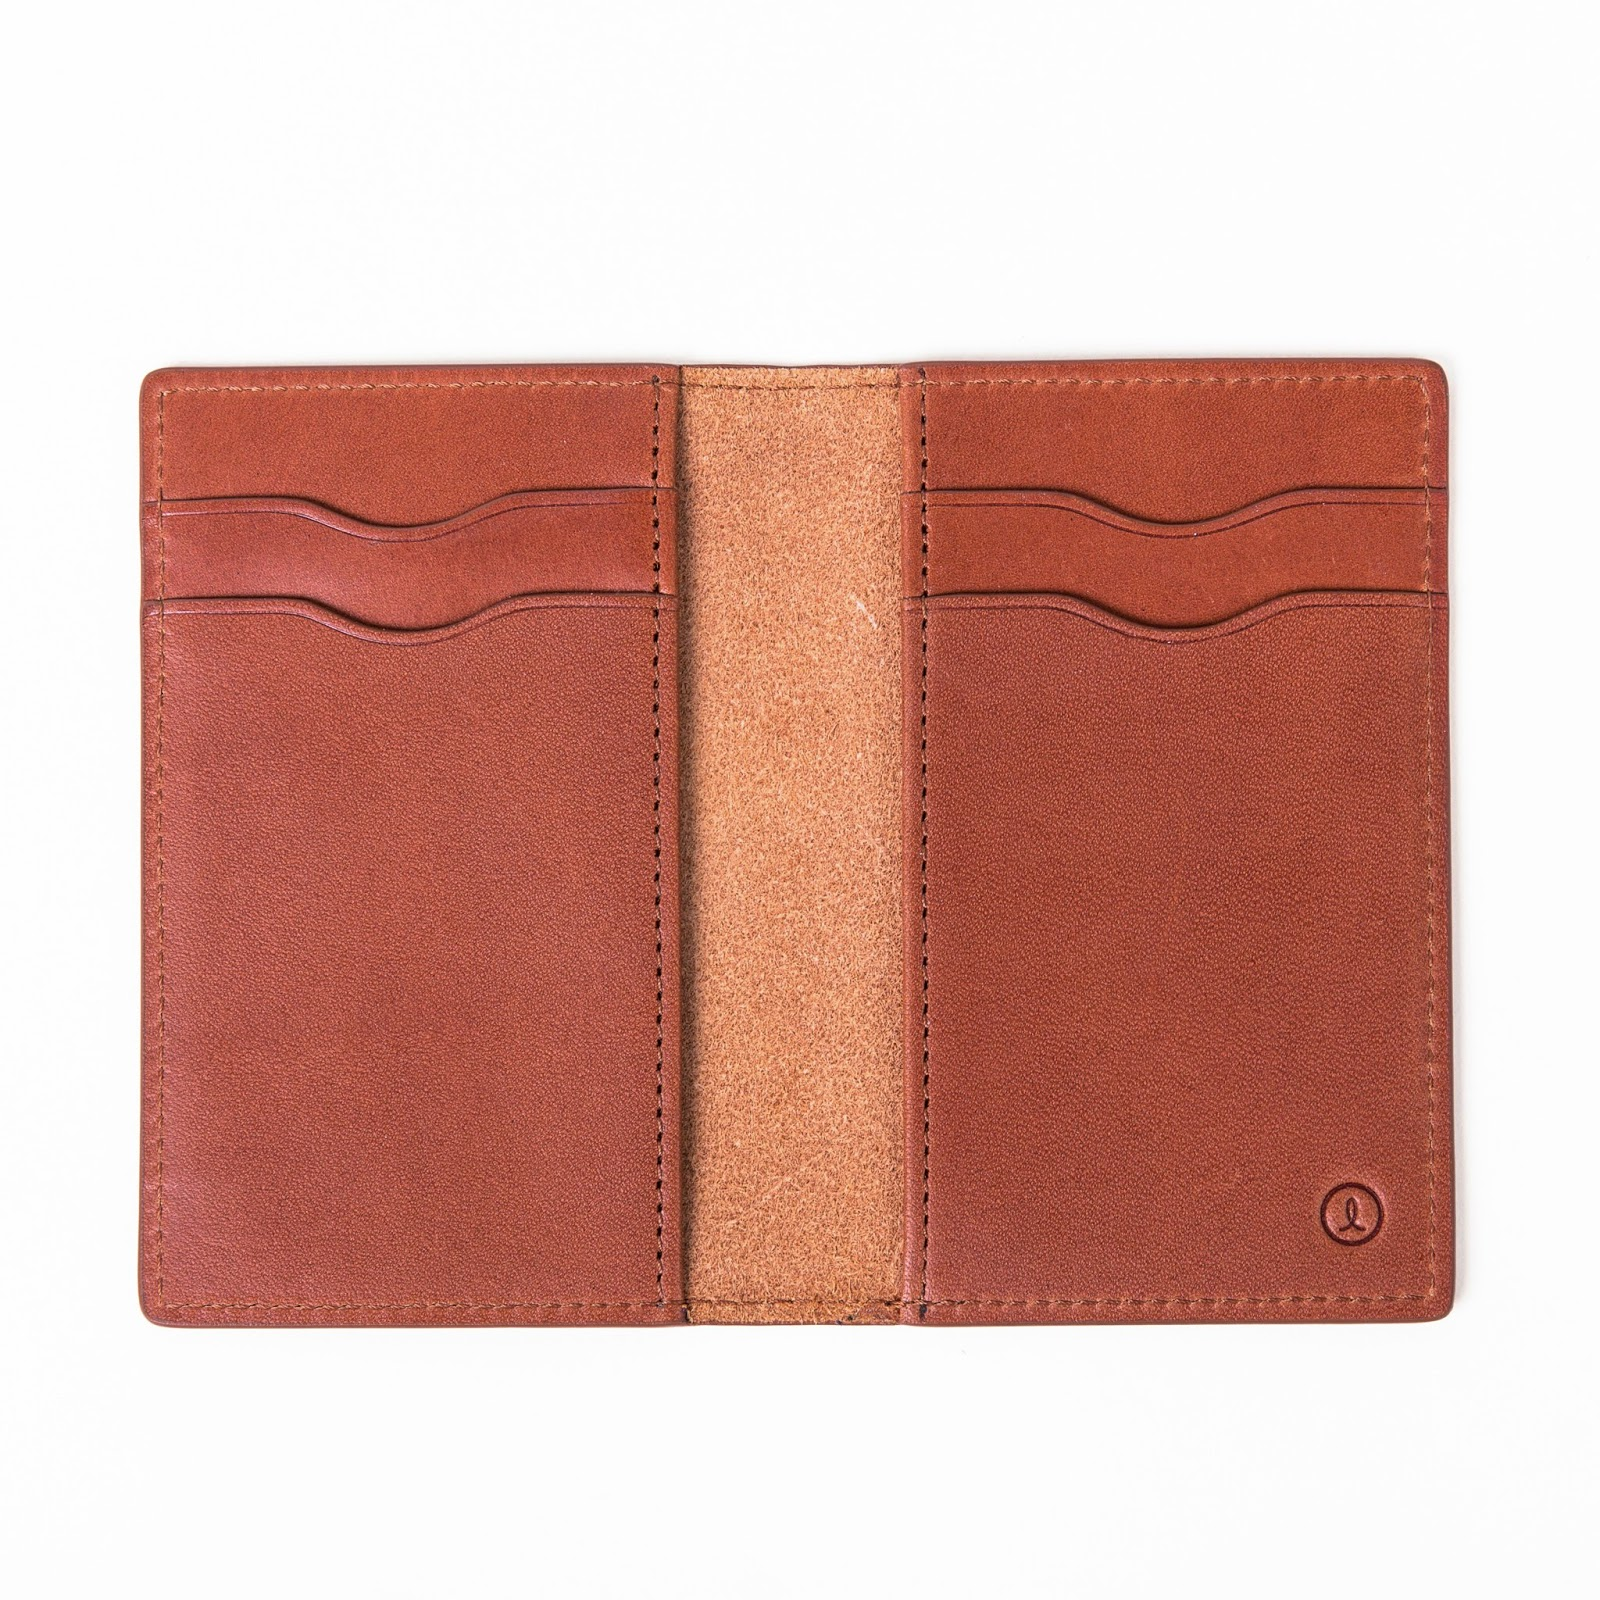 https://www.linjer.co/collections/men-small-leather-goods/products/vertical-wallet-cognac#details